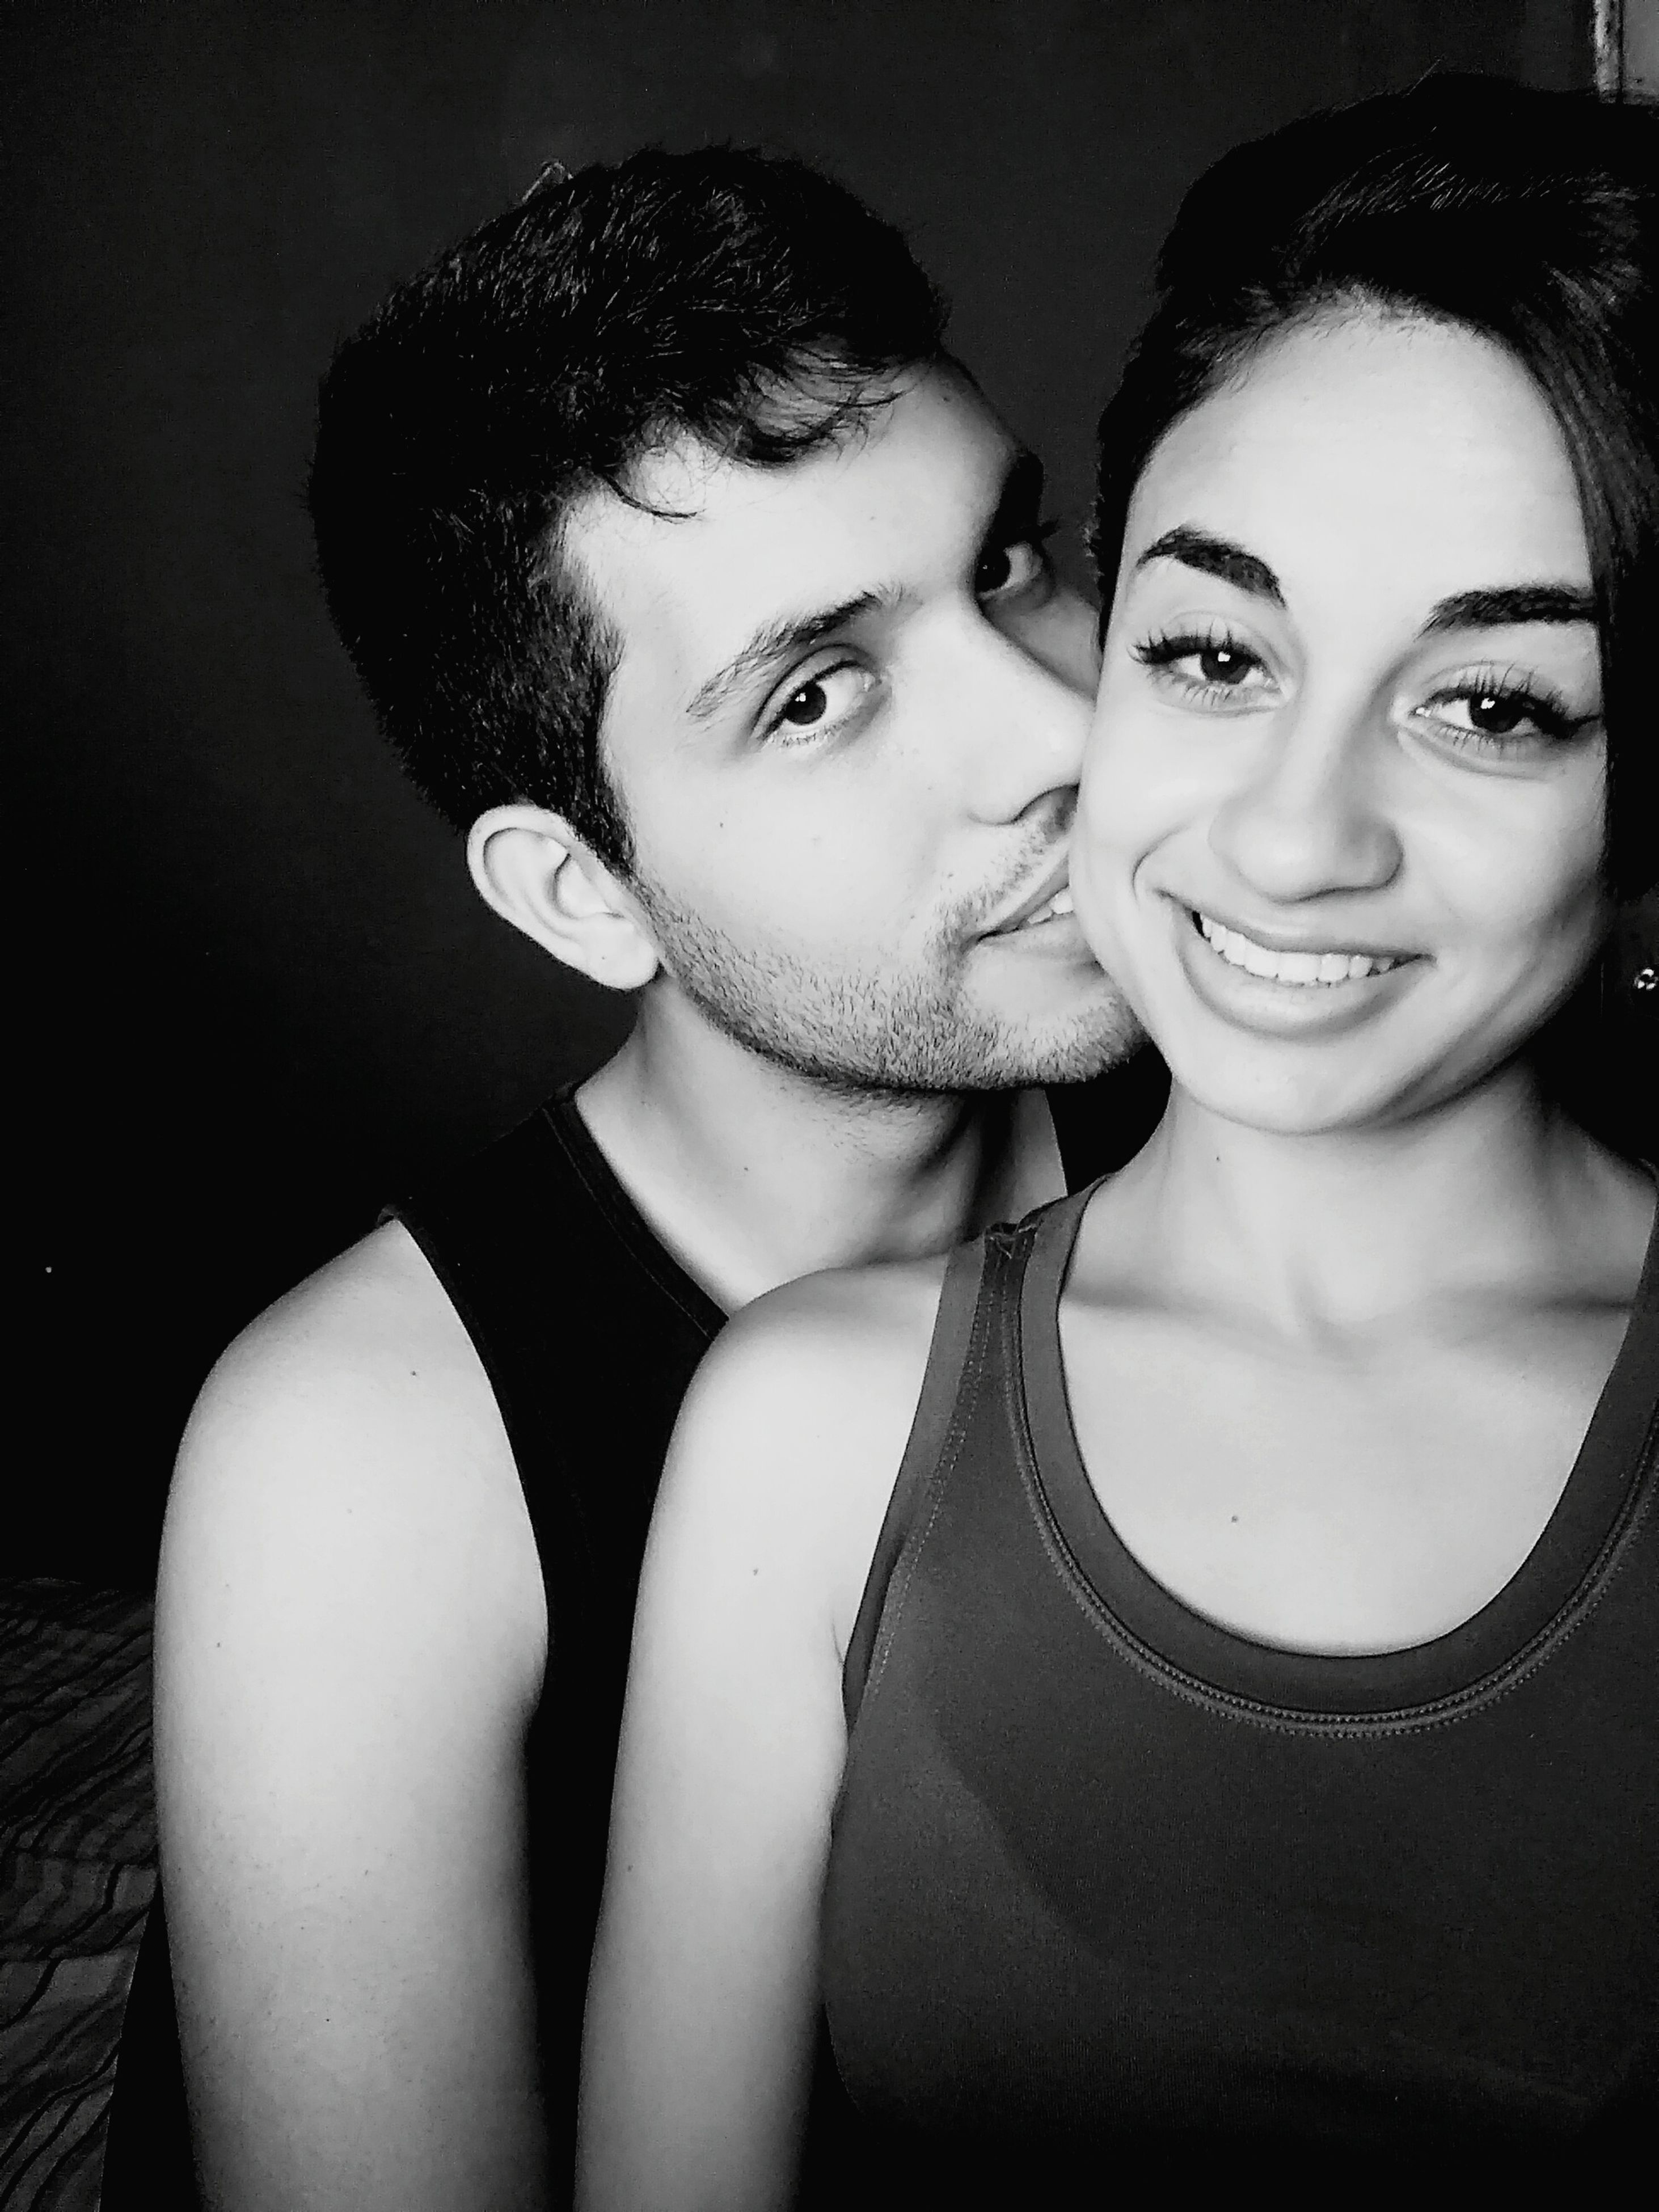 two people, young women, portrait, looking at camera, young adult, women, beautiful woman, love, lifestyles, fashion, togetherness, real people, close-up, indoors, adults only, smiling, adult, people, human body part, well-dressed, human lips, day